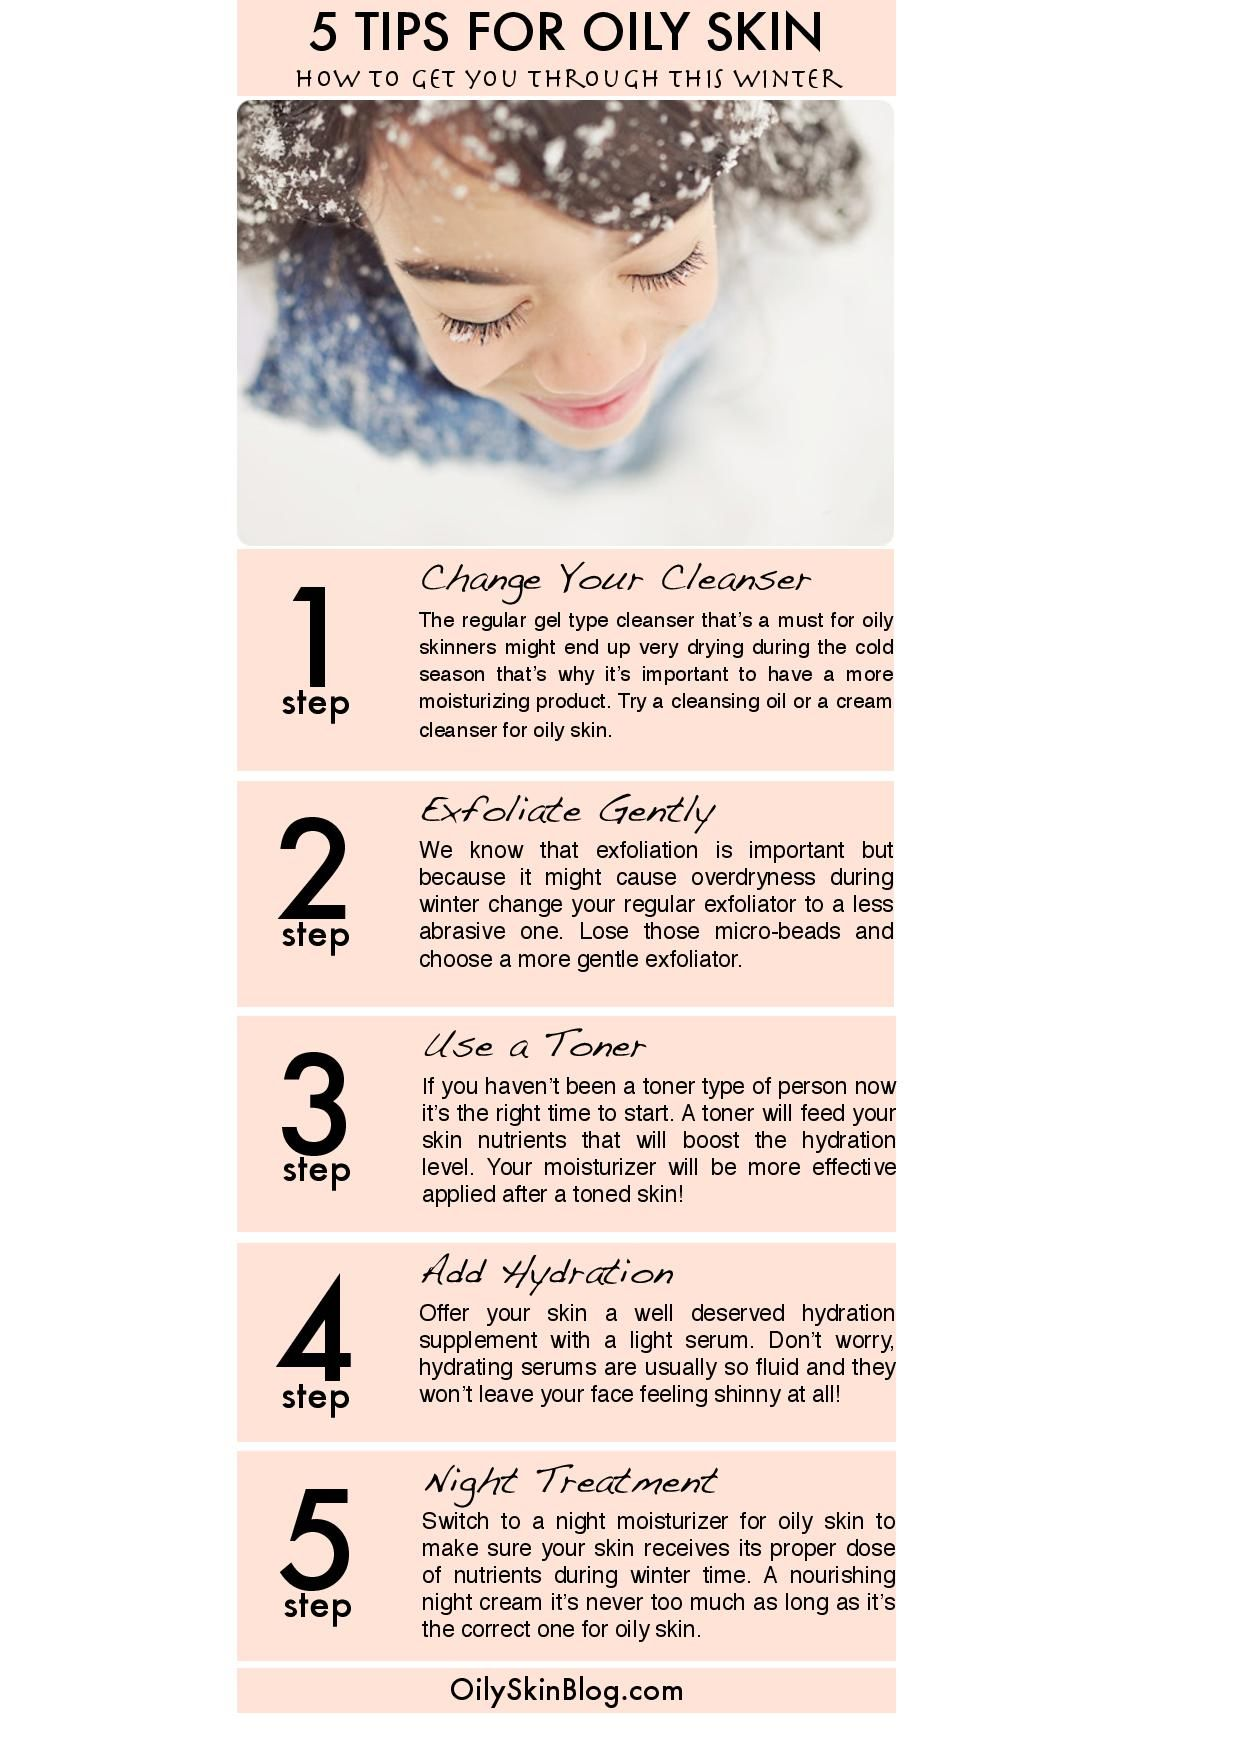 5 Tips For Oily Skin Tips For Oily Skin Oily Skin Skin Tips